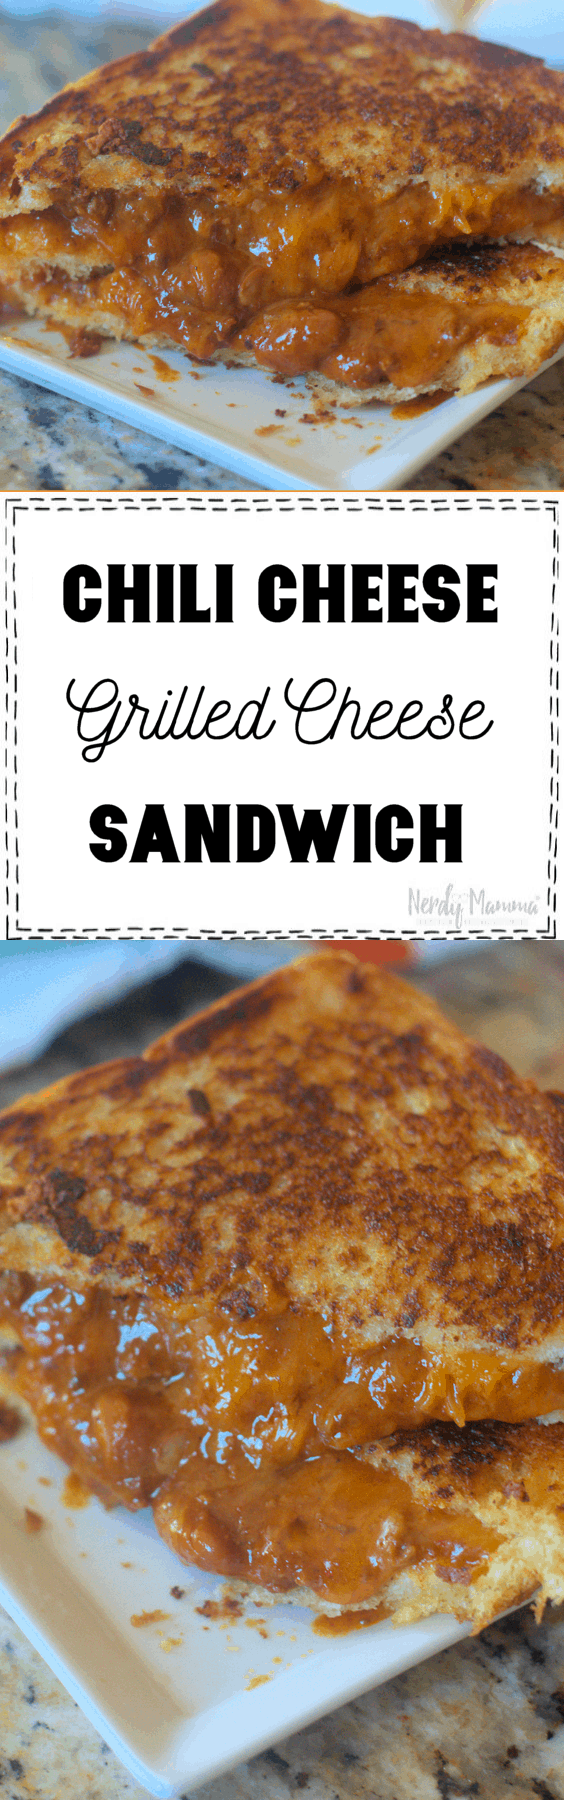 Because the nights are getting colder and the soup sometimes isn't enough to fill those bellies. I bring to you a hot and easy cheesy Chili Cheese Grilled Cheese sandwich.